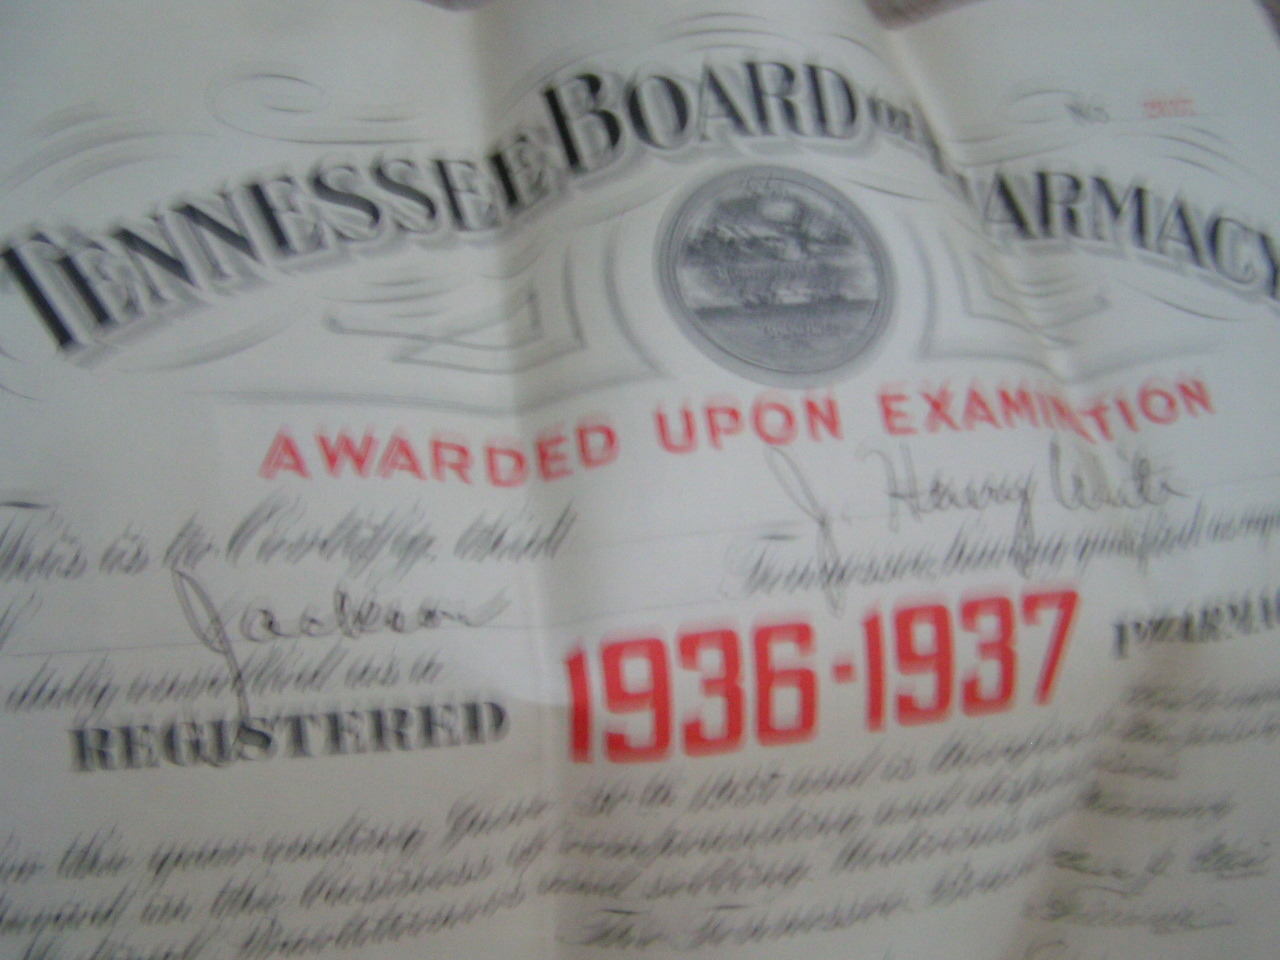 OLD 1936 37 Tennessee Board of Pharmacy Certificate Diploma Seal Ephemera bz